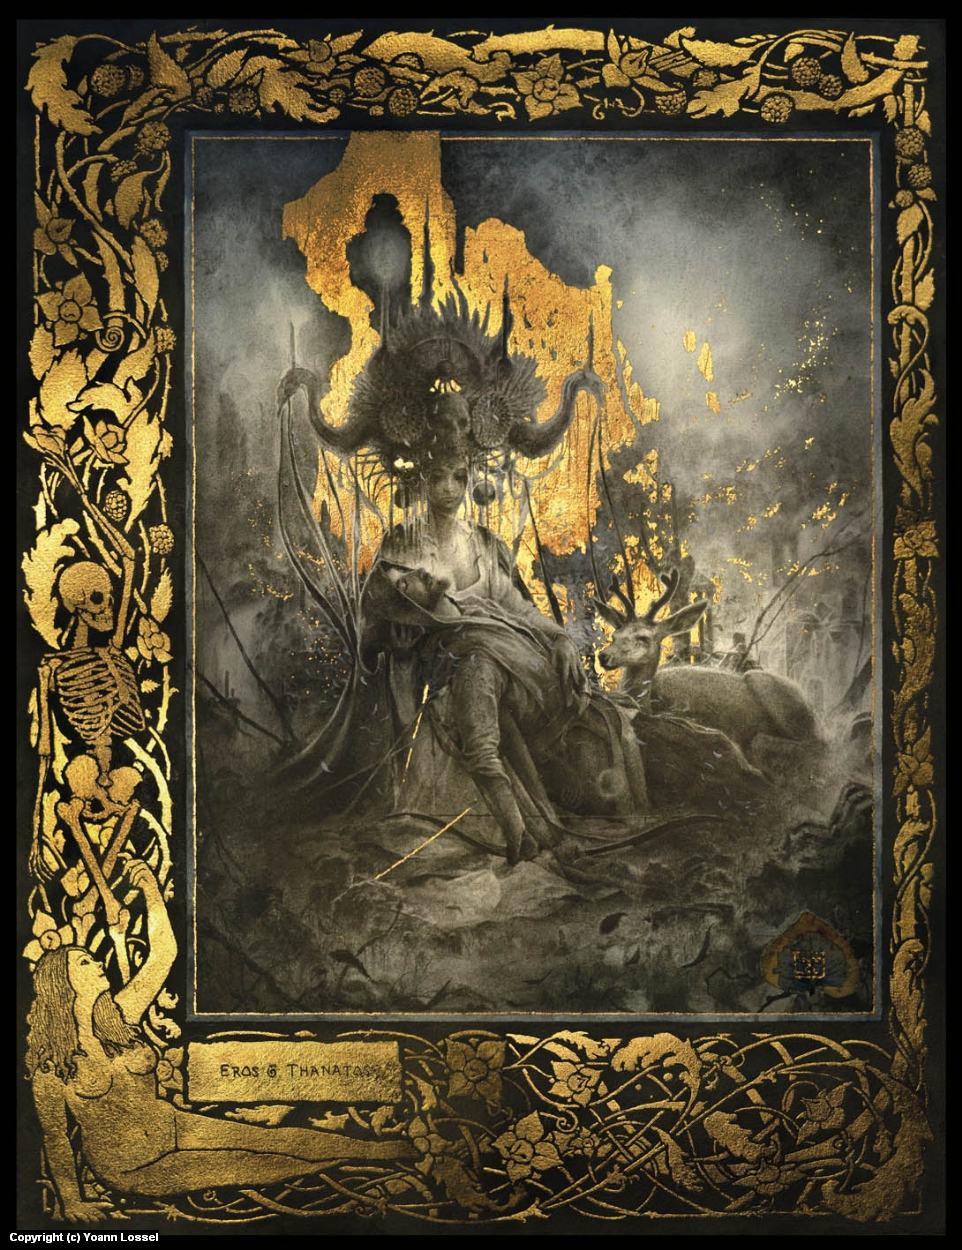 Eros et Thanatos Artwork by Yoann Lossel